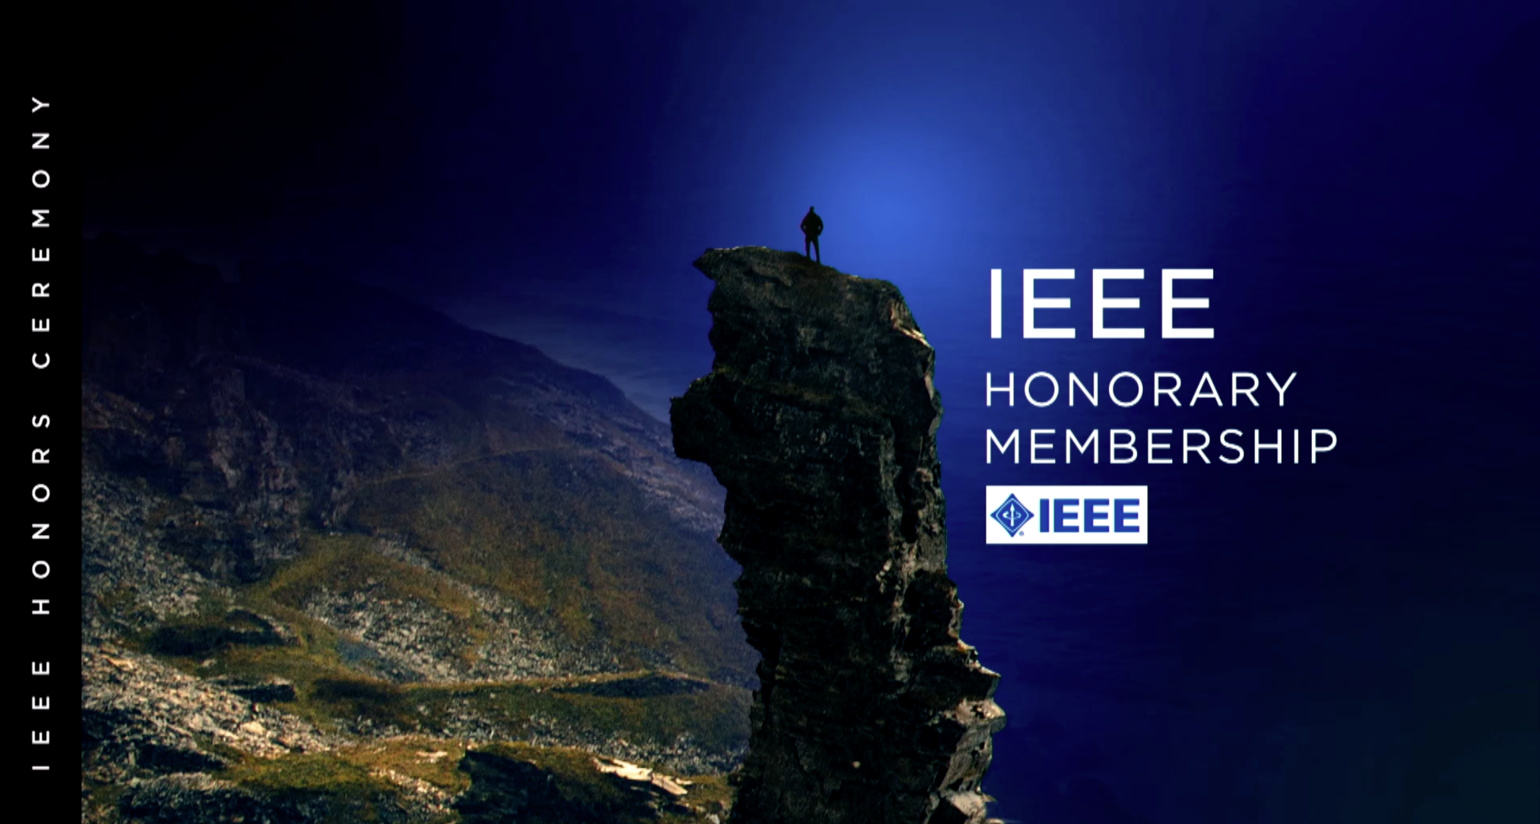 IEEE Honorary Membership - Anton Zeilinger and Mike Lazaridis - 2018 IEEE Honors Ceremony